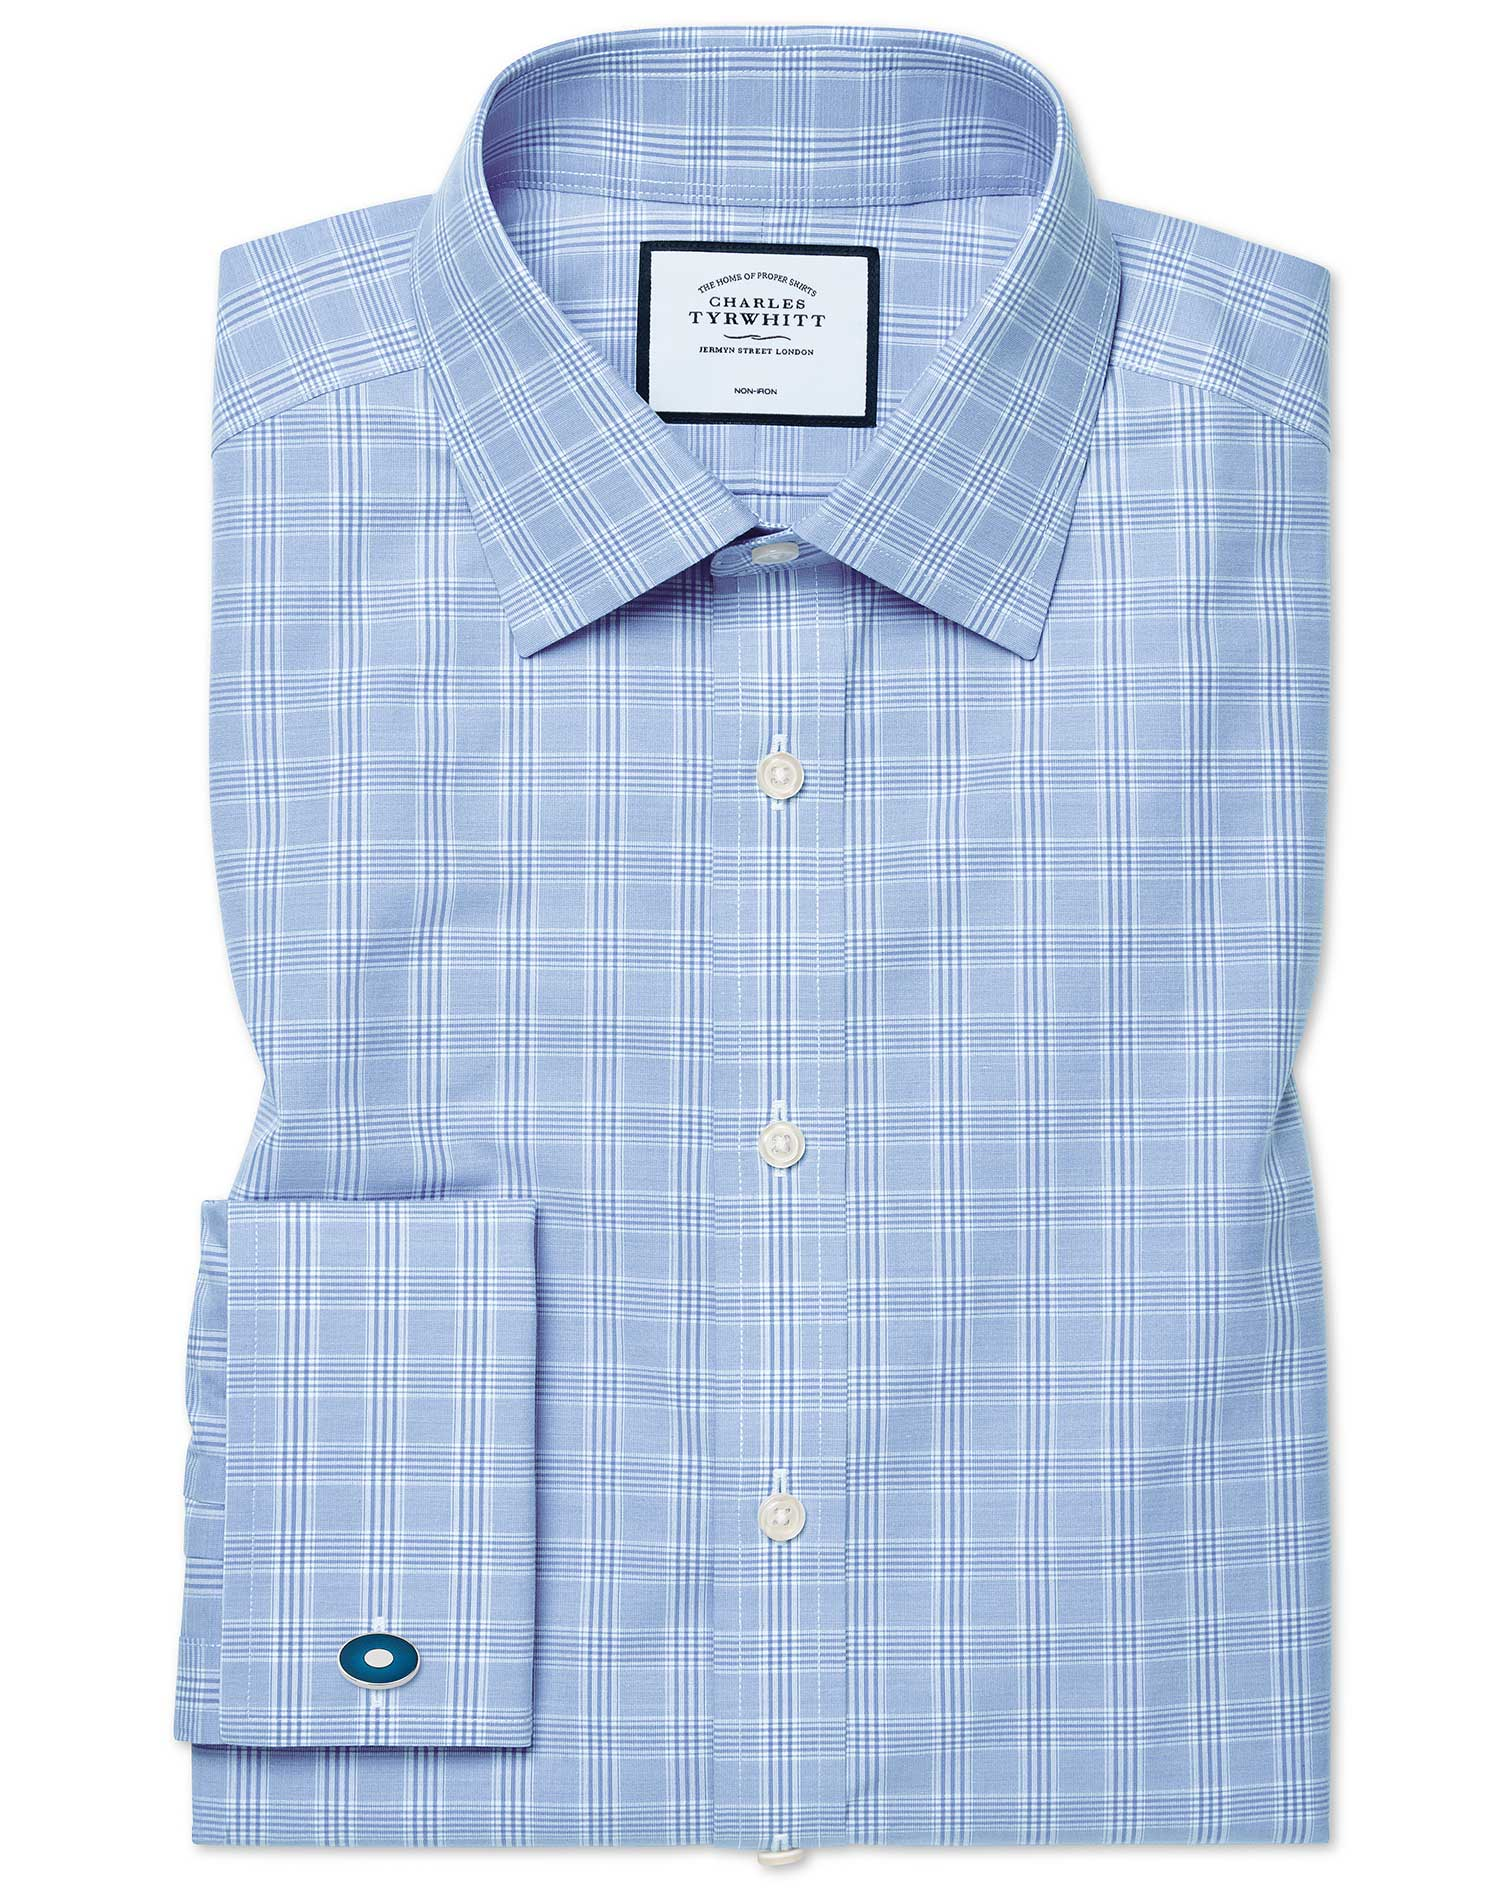 Slim Fit Non-Iron Sky Blue Prince Of Wales Check Cotton Formal Shirt Single Cuff Size 14.5/32 by Cha